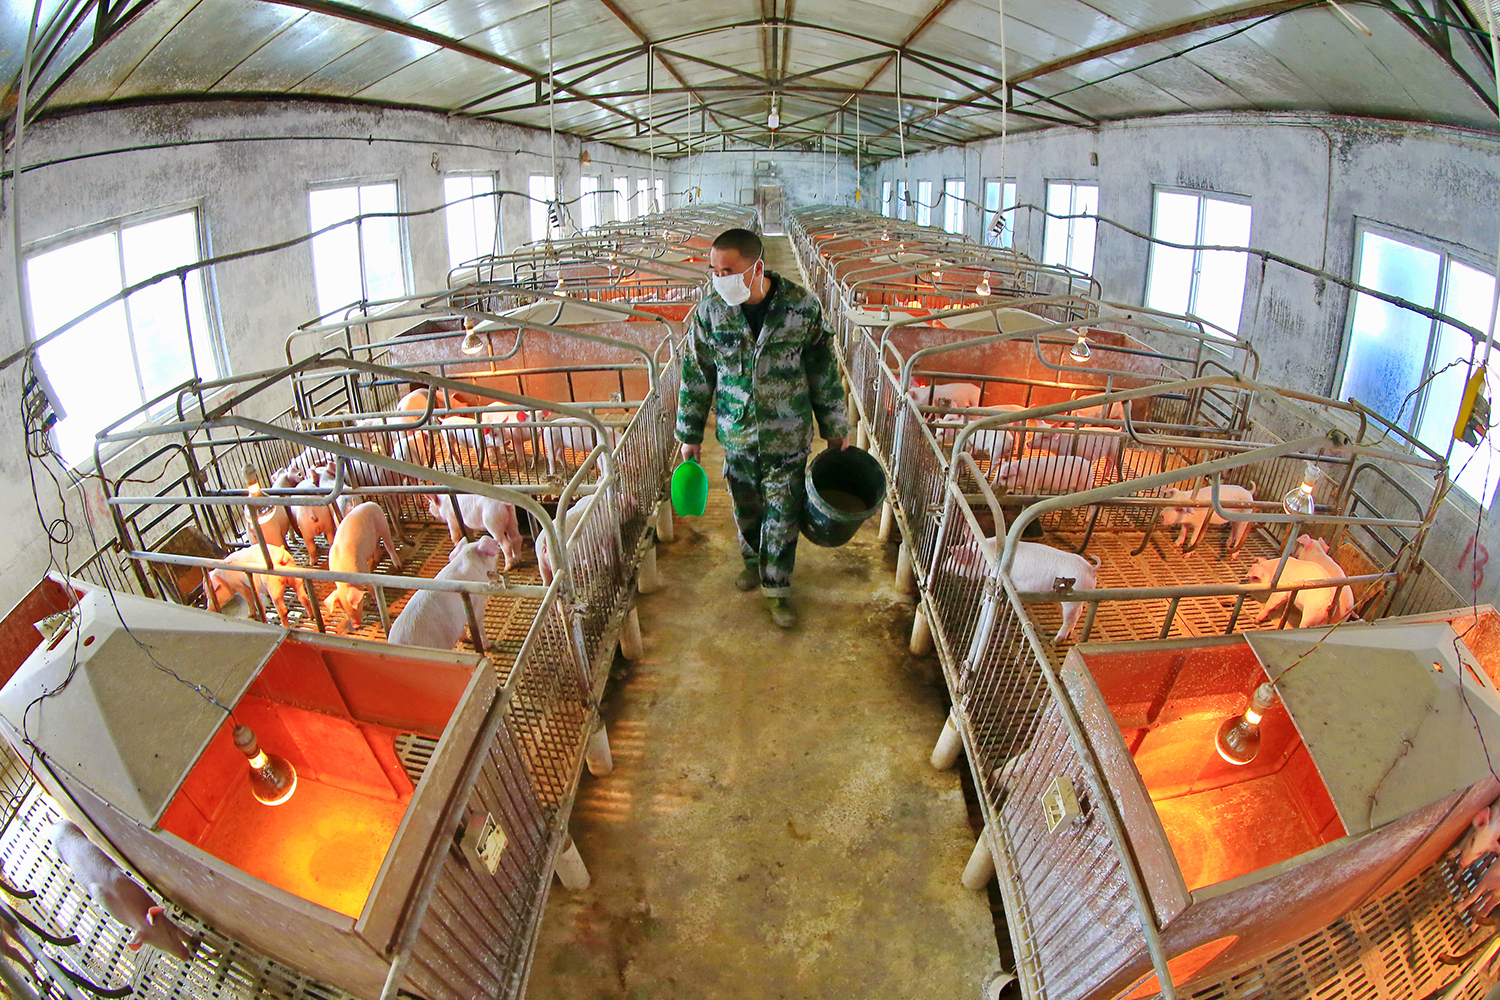 China's Farms Are Petri Dishes of Antibiotic Resistance